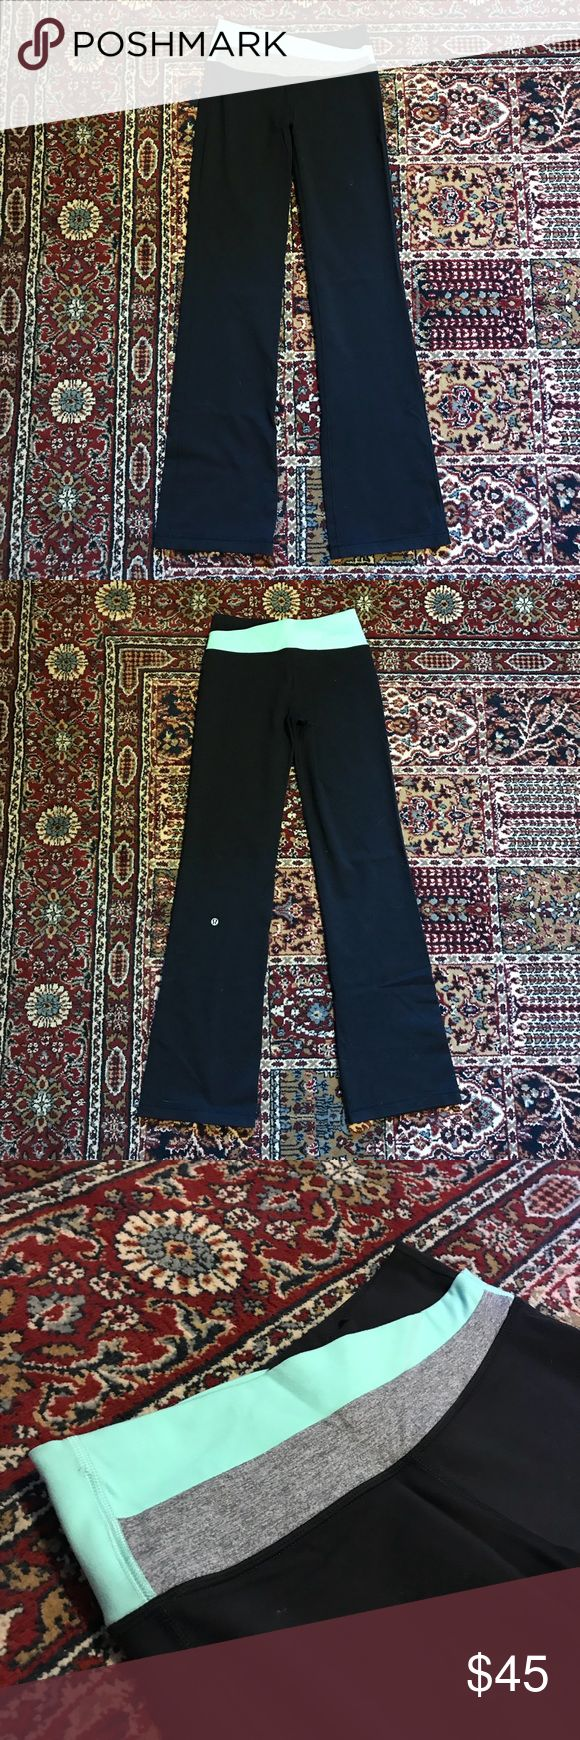 Lululemon Astro Pant Full-On Luon Yoga Size 4 Black lululemon astro yoga pants with light blue and gray accents at waist. Full-on Lyon material, four way stretch. Small pocket on back of waistband. Women's size 4 regular. In great condition, no pilling, worn a handful of times. lululemon athletica Pants Boot Cut & Flare